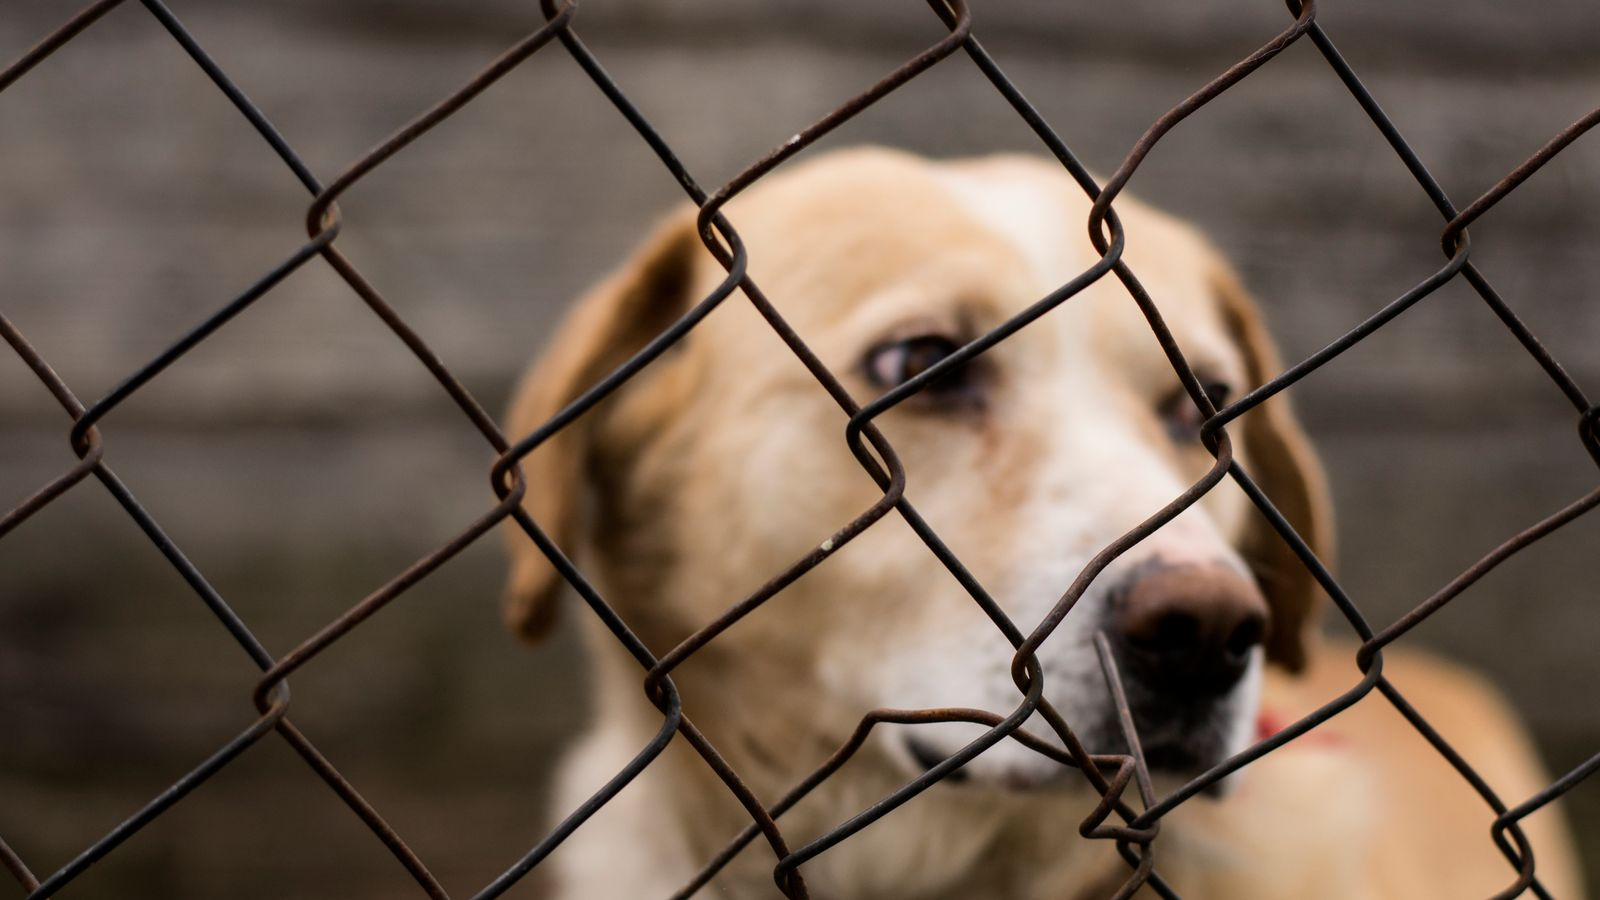 Government draft tougher animal cruelty laws after sentience row